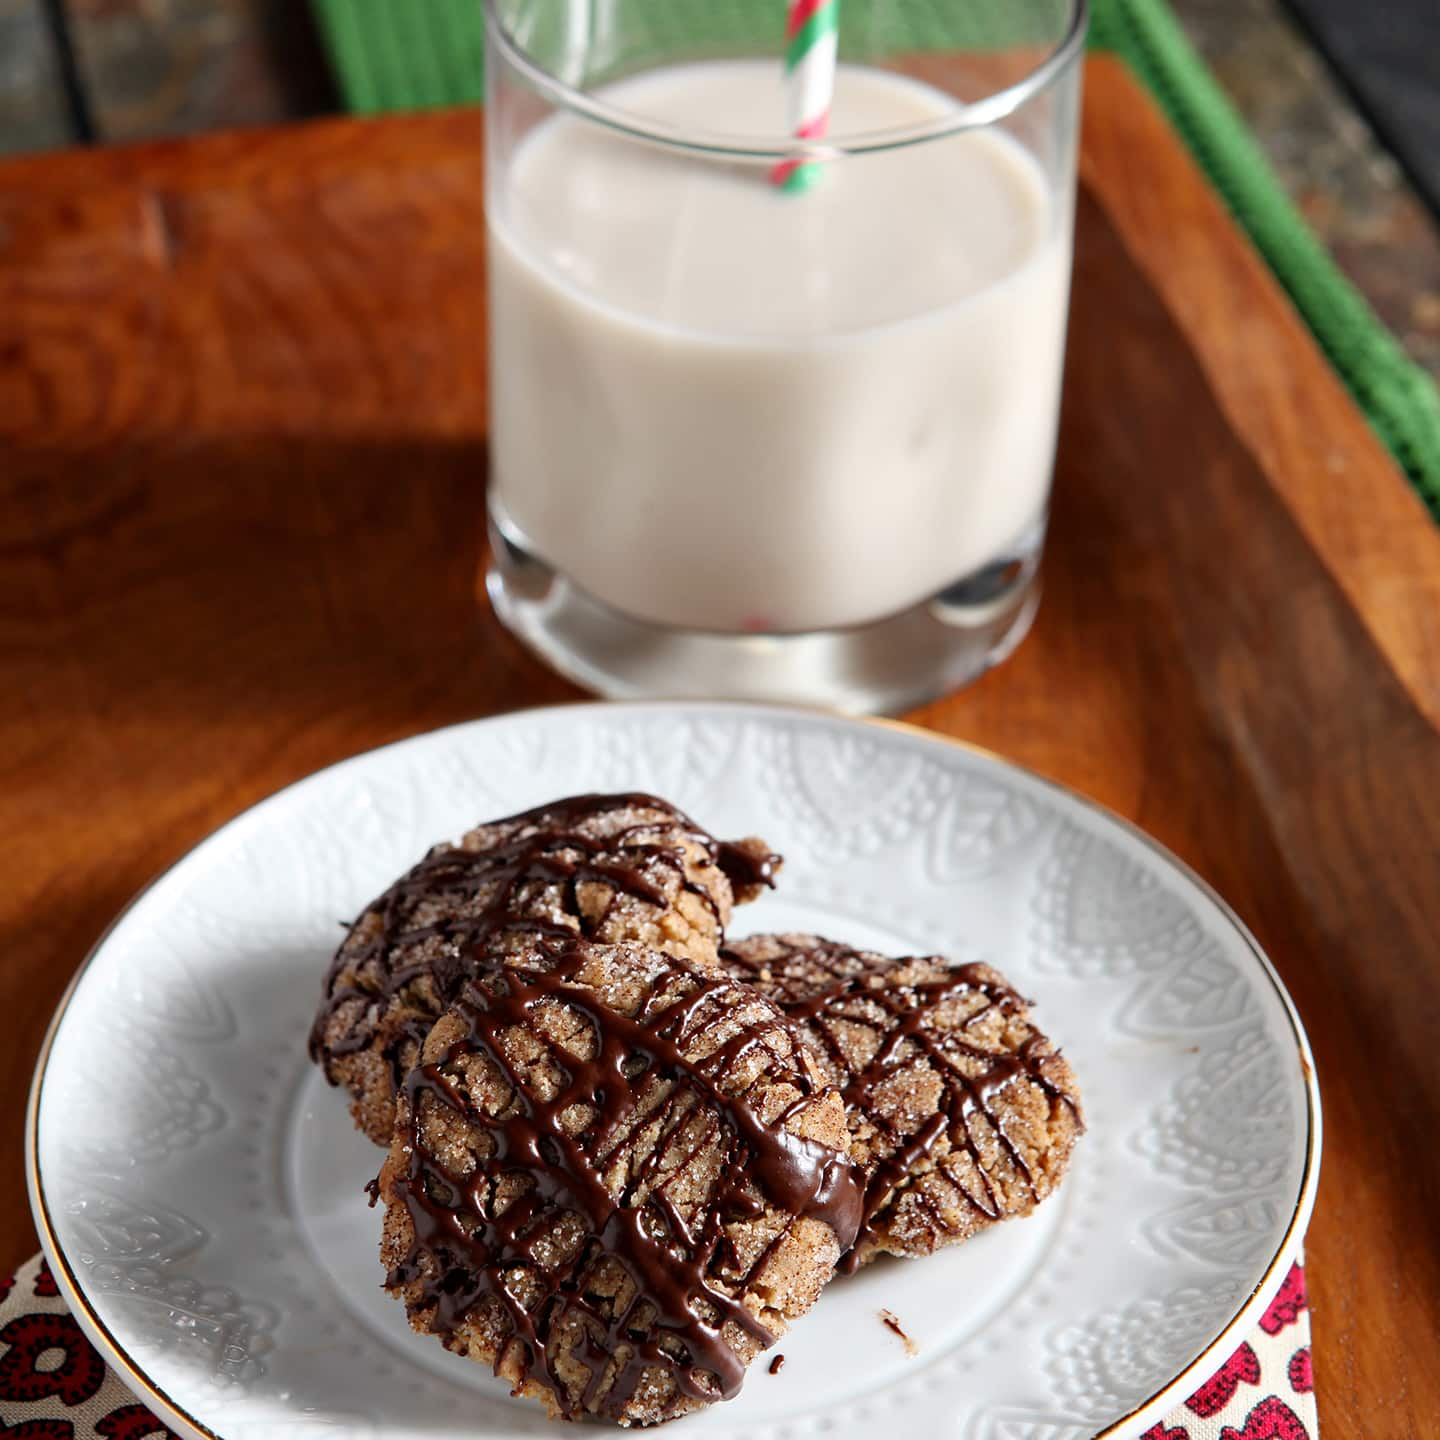 A twist on the classic Peanut Blossom Cookies, these Vegan Peanut Butter Espresso Cookies are rich, crunchy and delicious. Vegan peanut butter and espresso cookies are drizzled with a chocolate espresso glaze that makes the cookies sing!